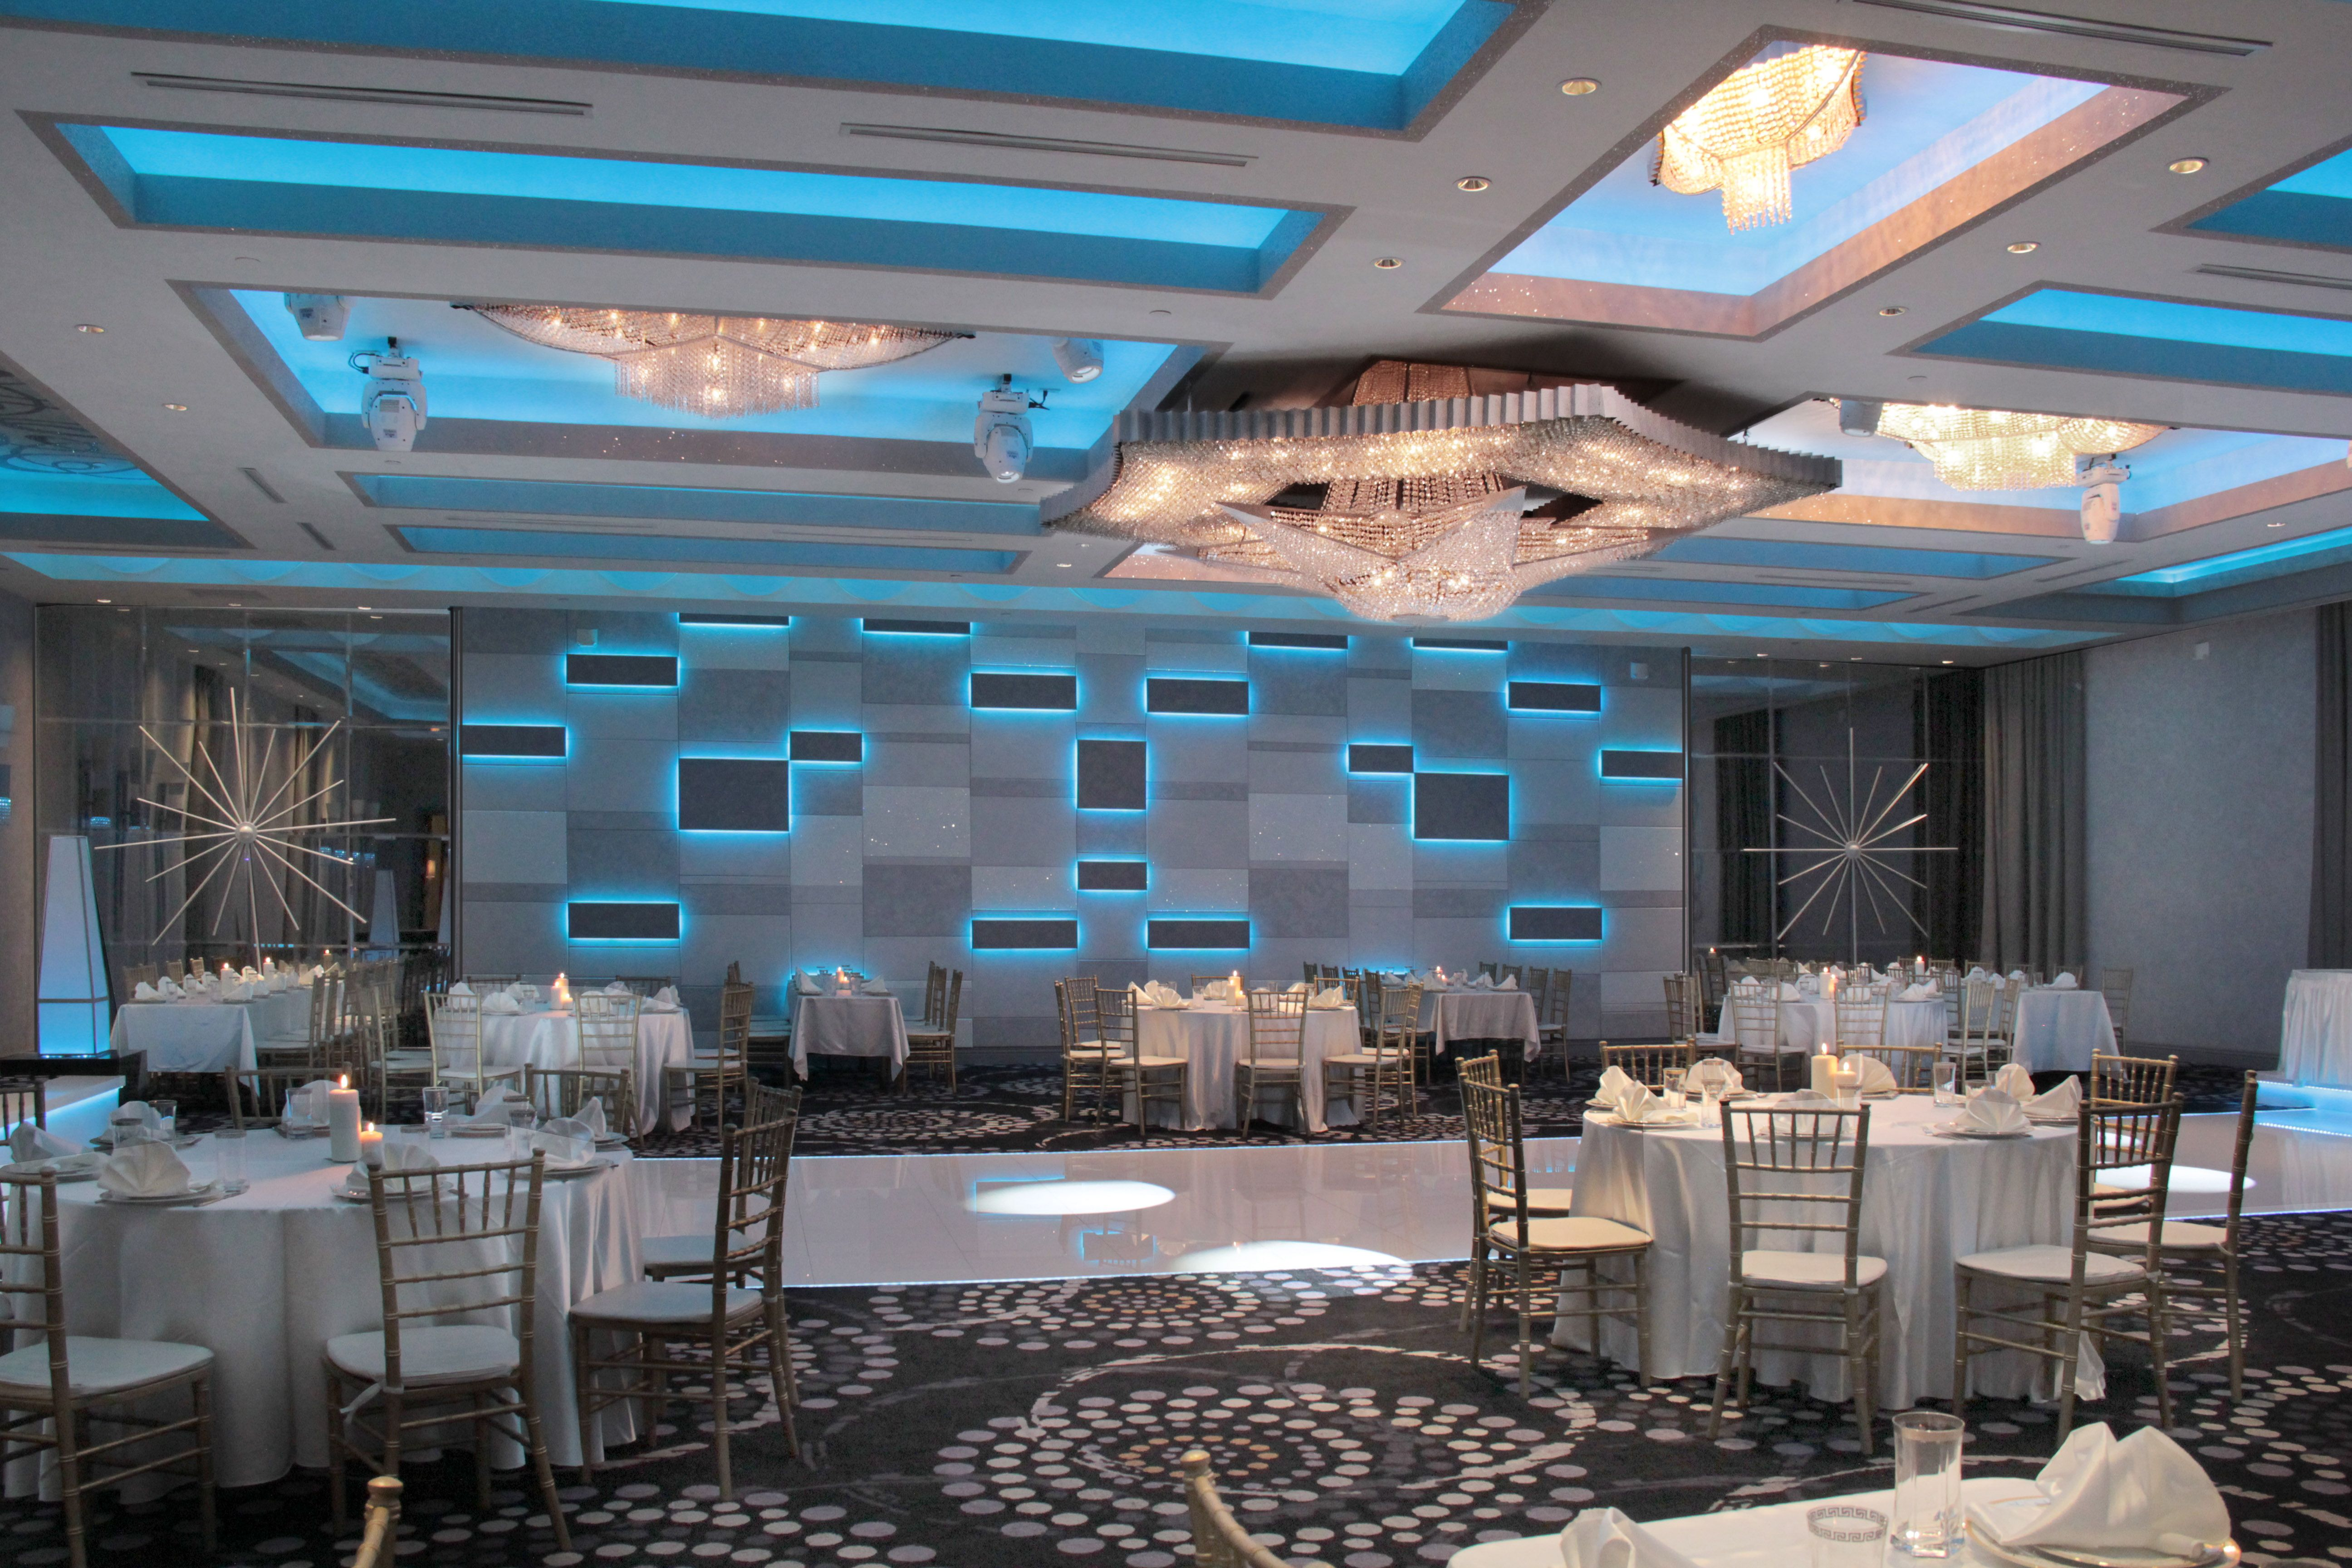 Hollywood Banquet Hall By Daniely Design Group Hospitality Design